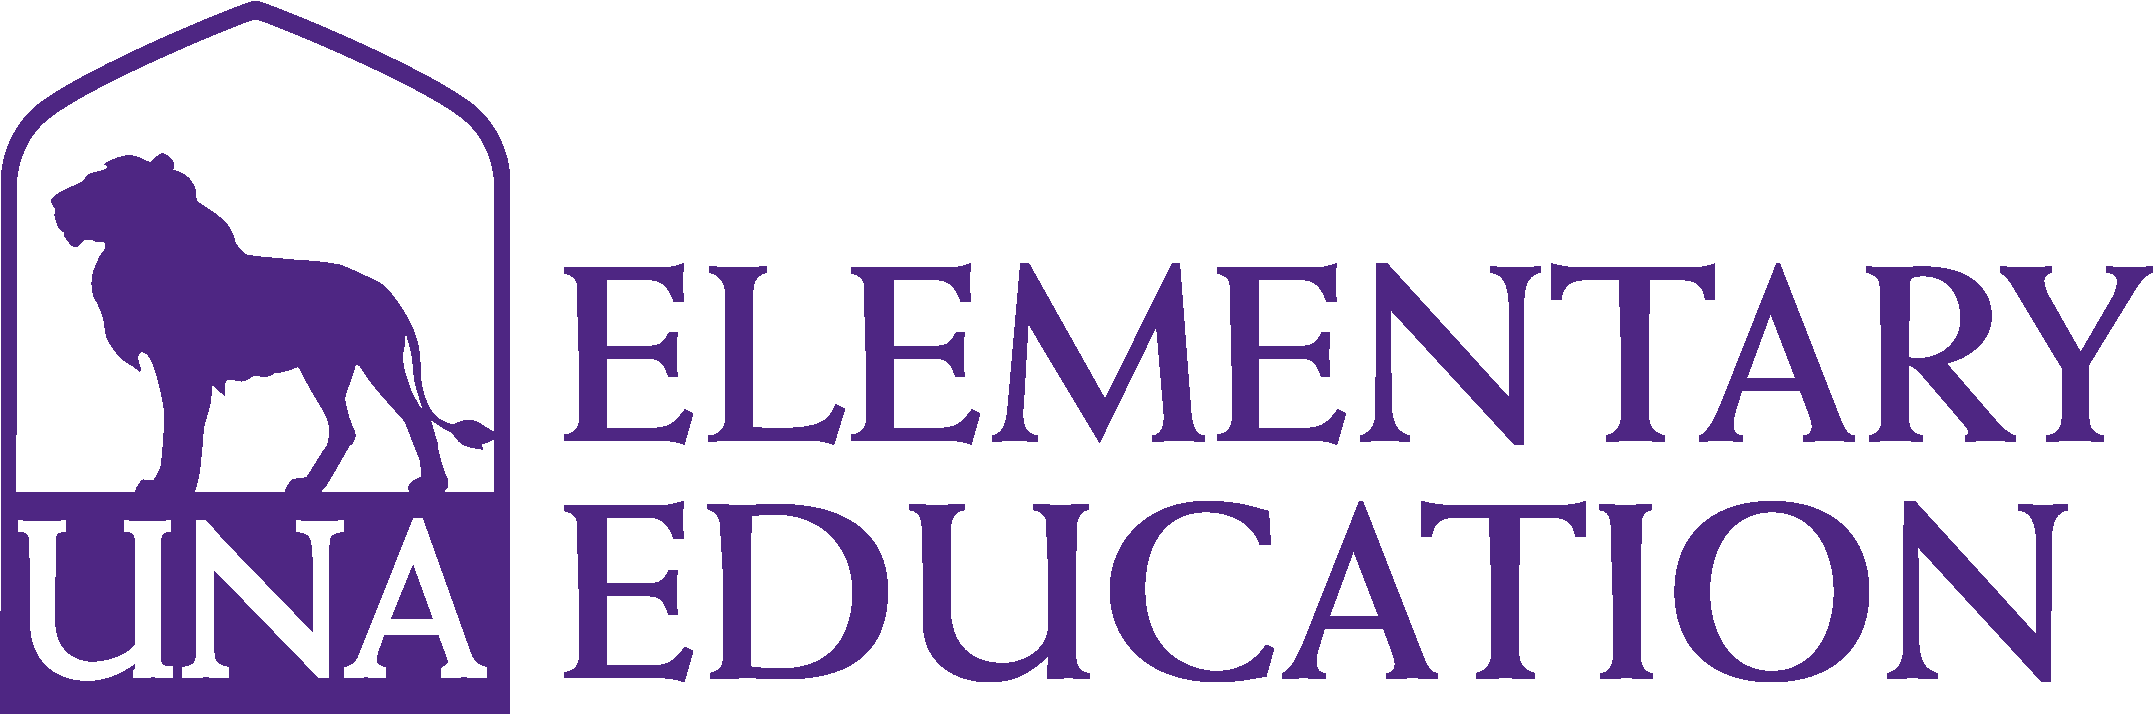 College of Business - Elementary Education Logo - Purple - Version 3